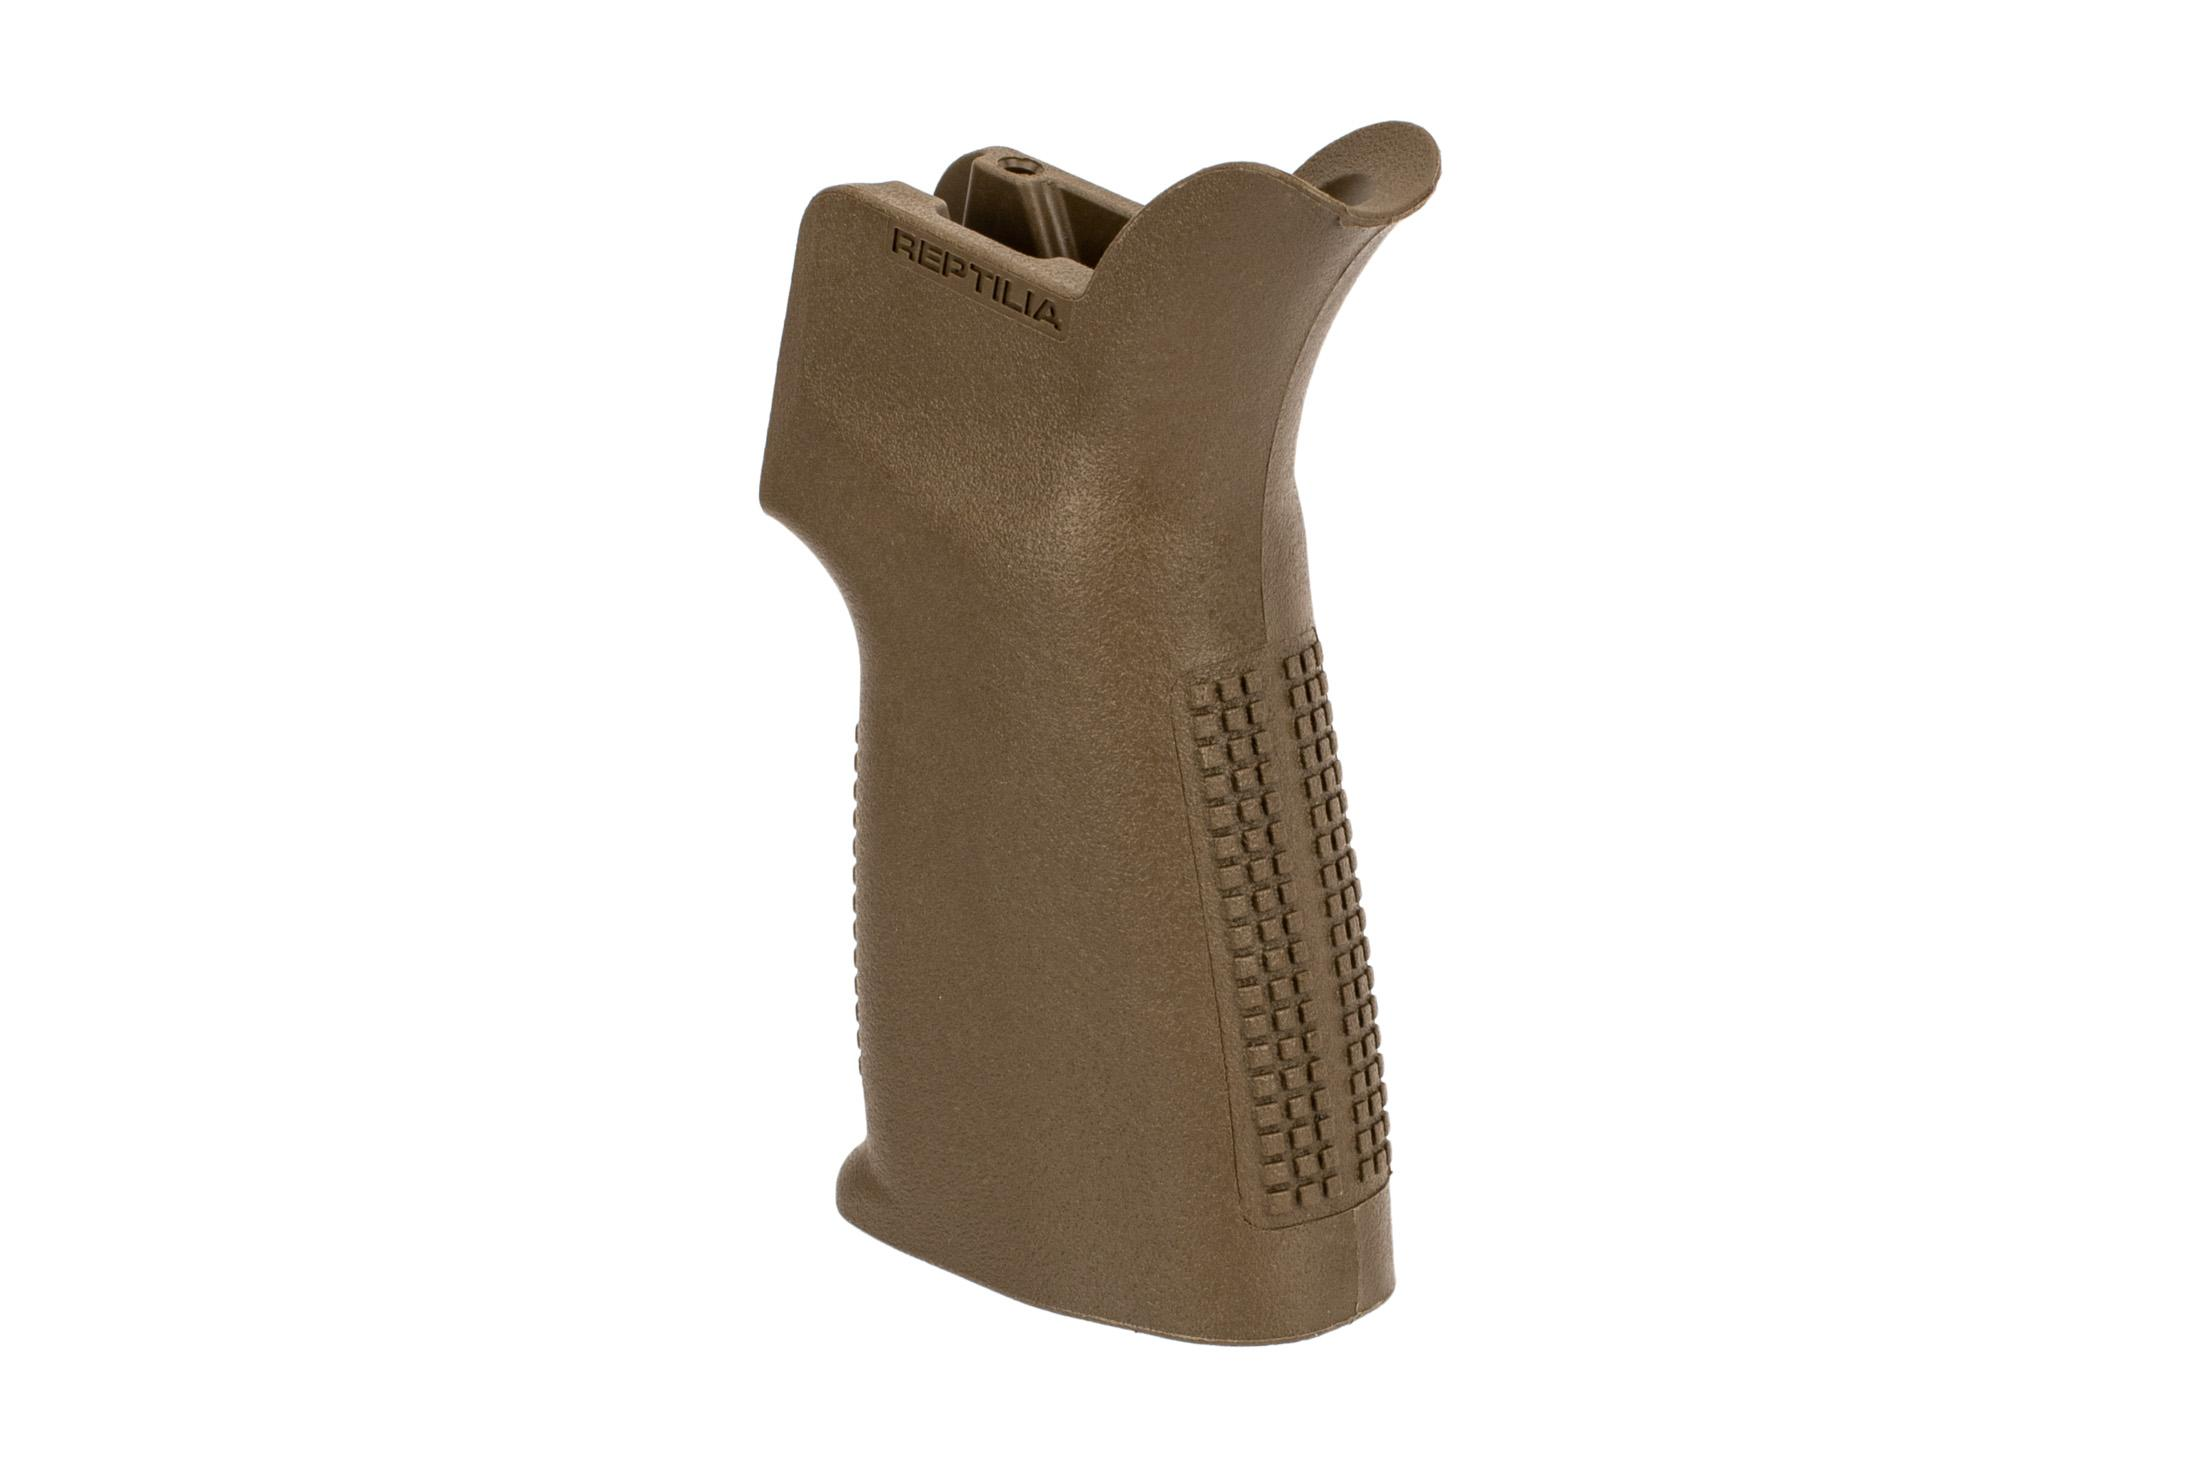 Maxim Defense PDX Pistol Kit comes with the Reptilia Corp pistol grip